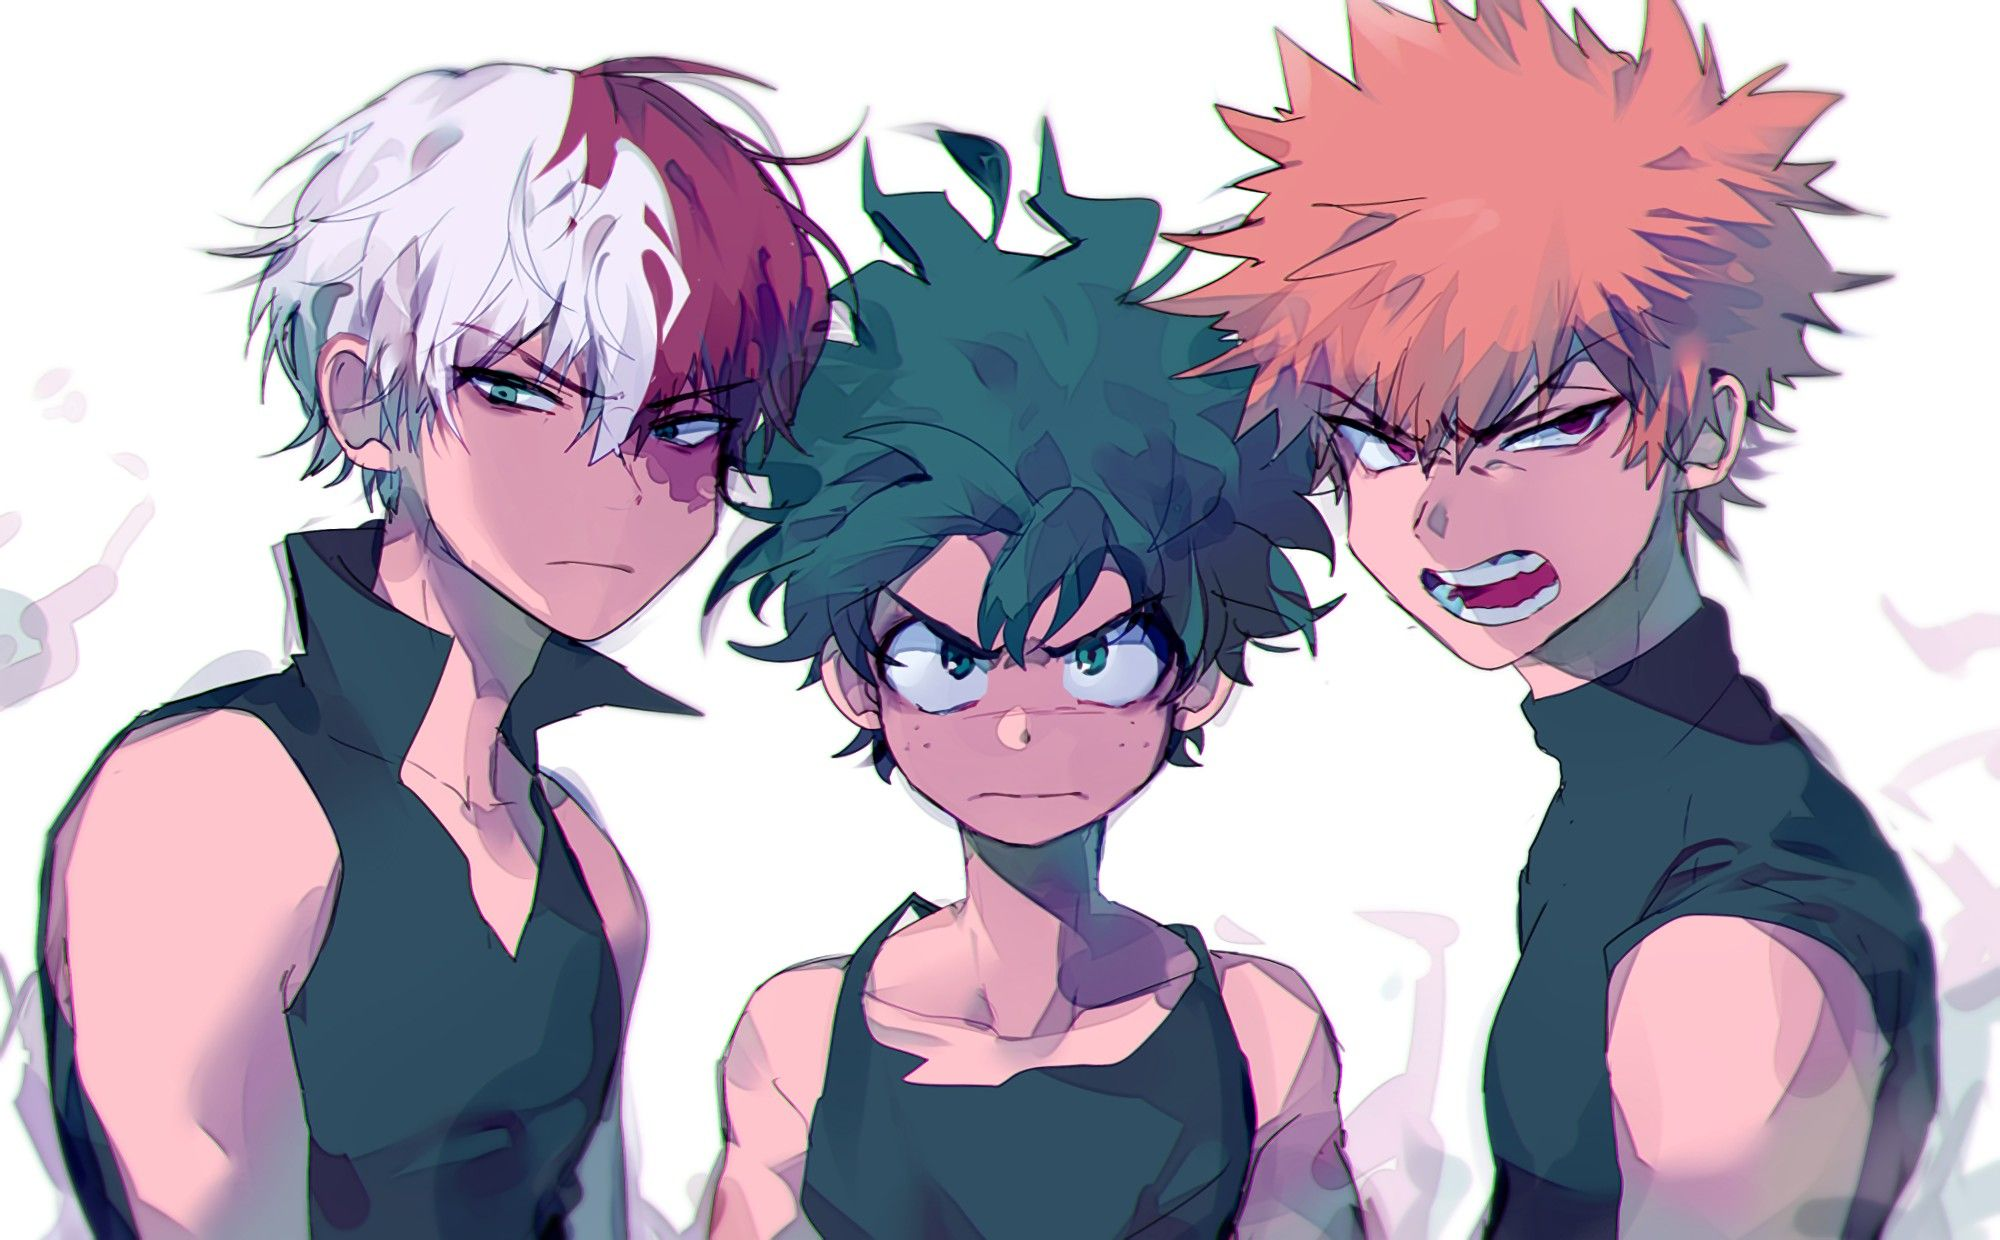 My Hero Academia Chapter 294 Release Date, Spoilers- Deku Fights Dabi to save Shouto and Endeavor